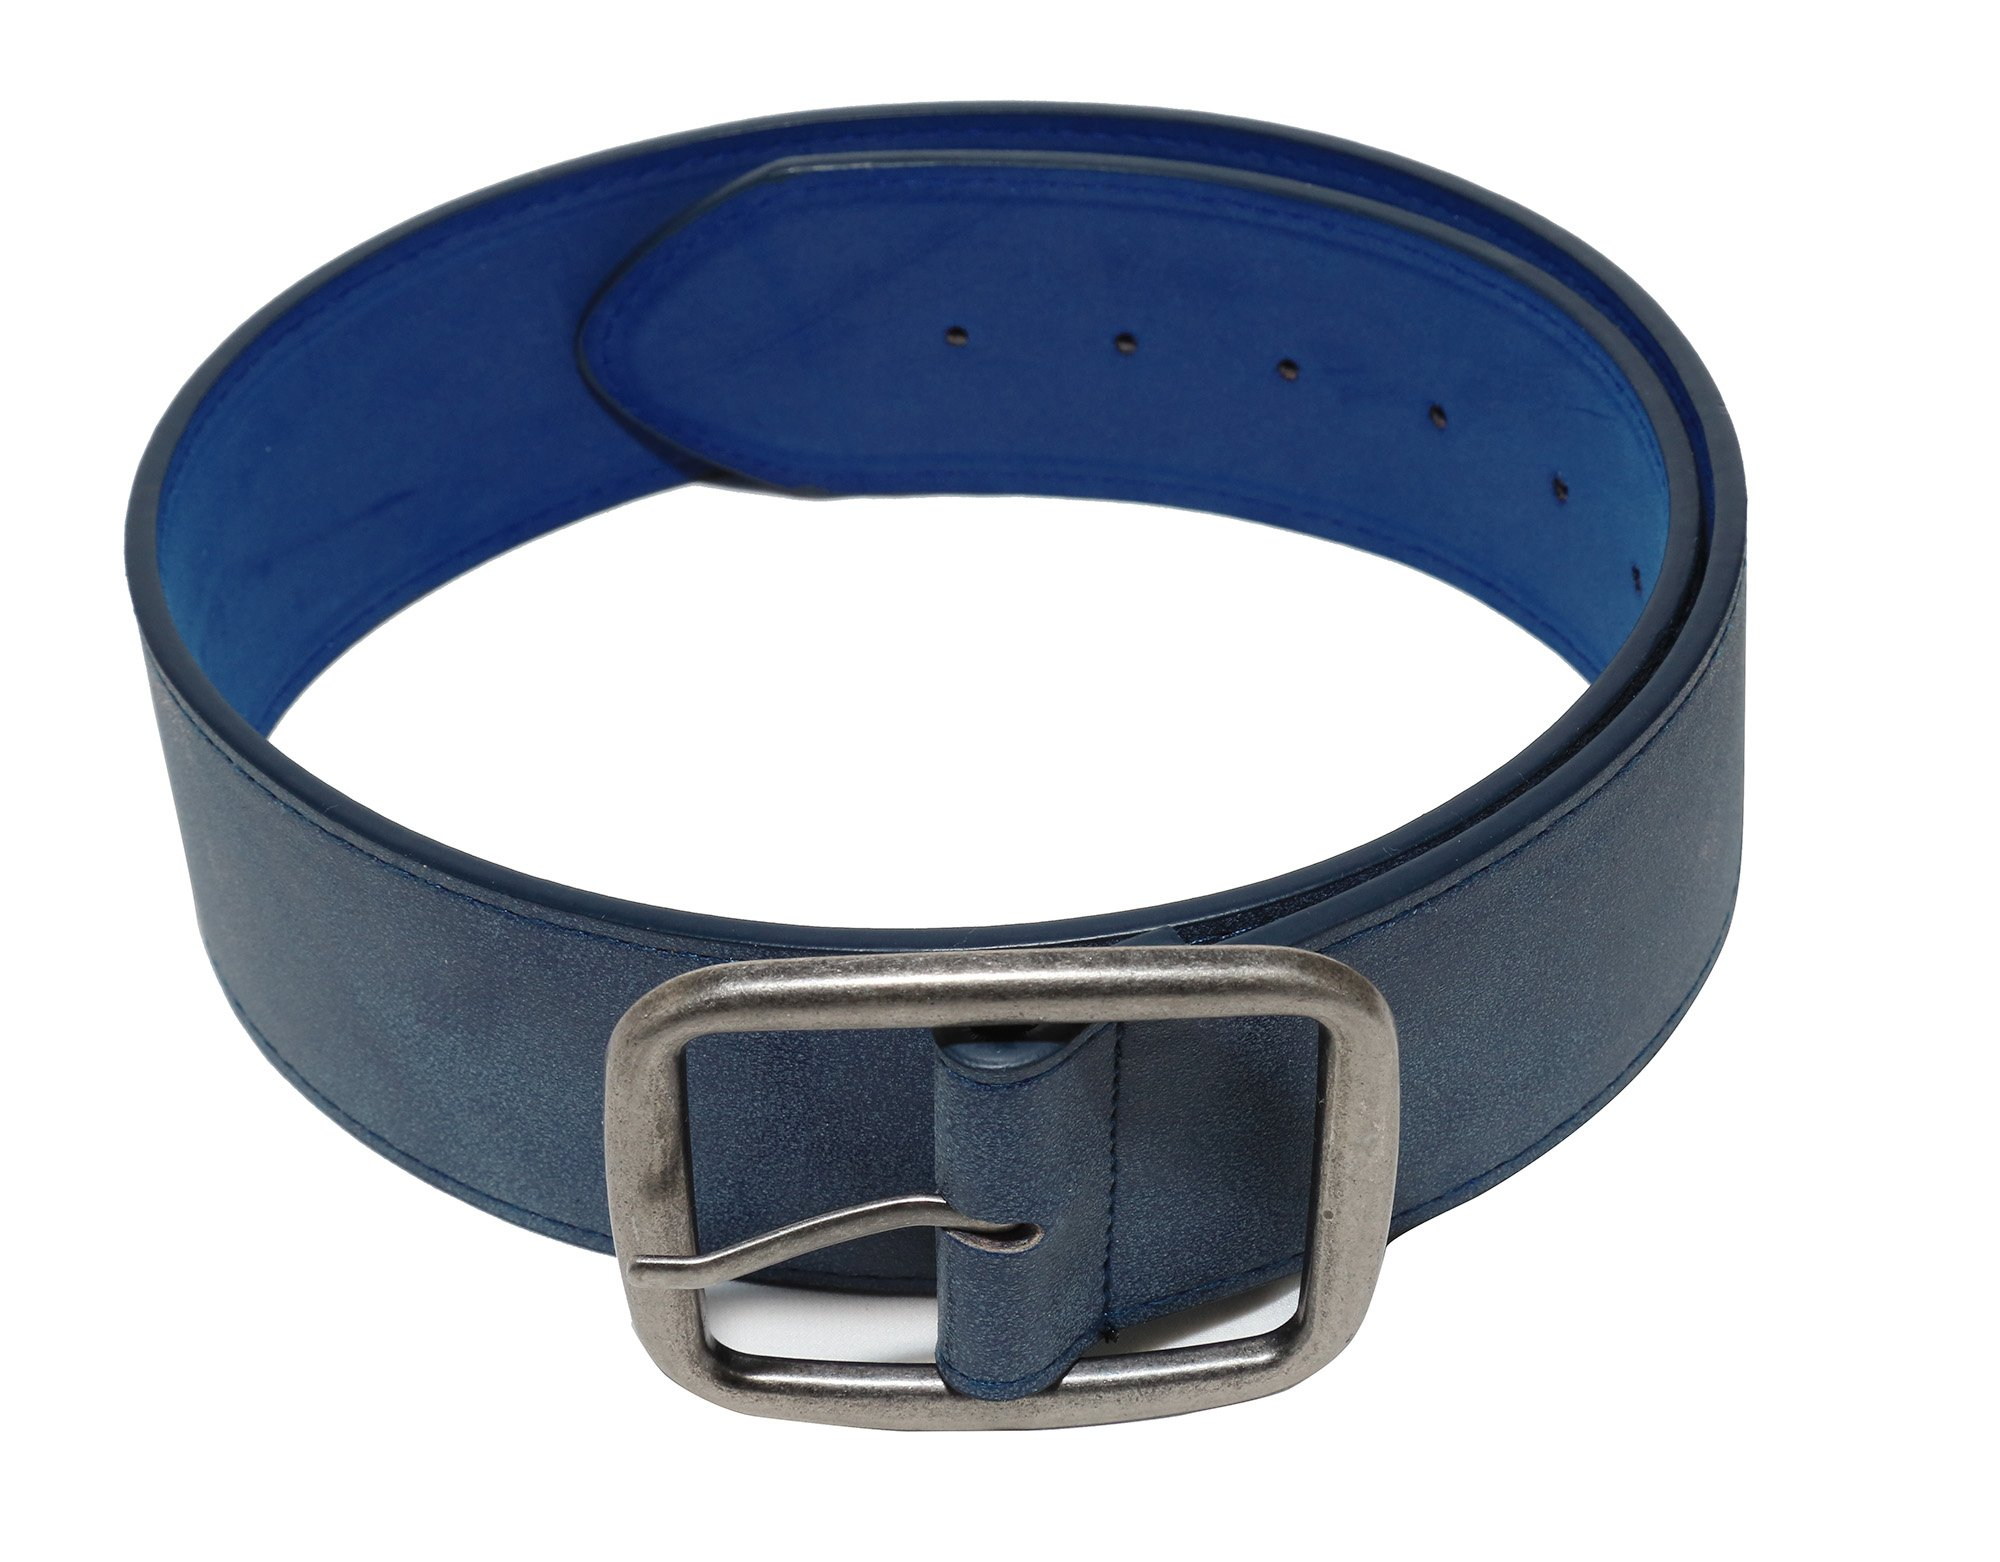 Modeway Women 2'' Wide Suede Leather Silver Square Buckle Adjustable Waist Belts (S-M, Navy-4#)